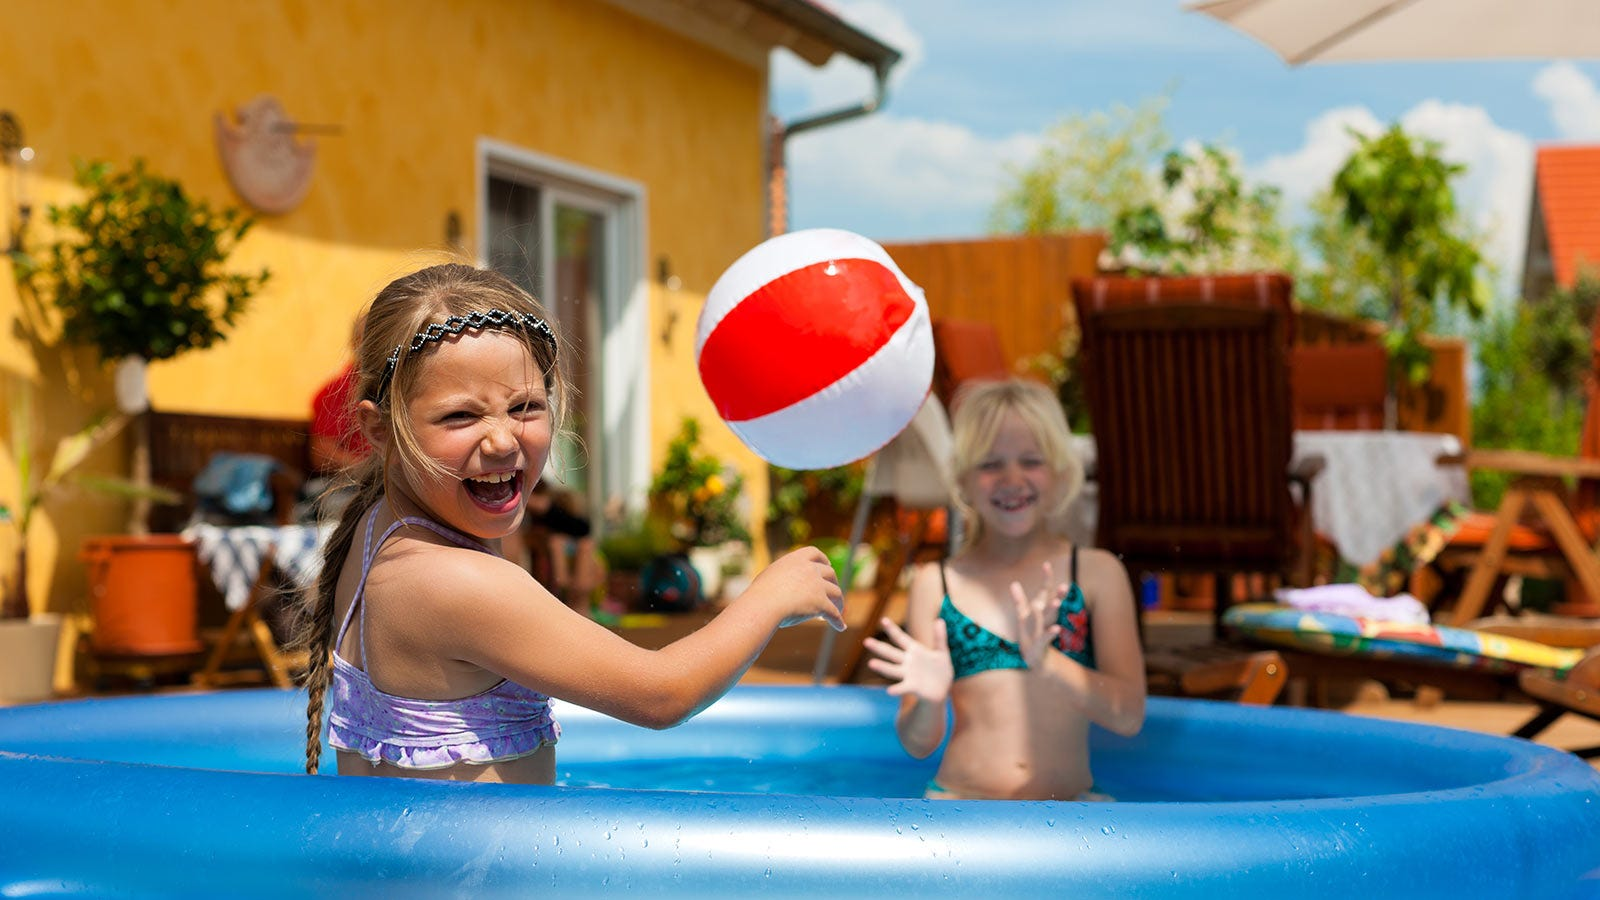 Two little girls playing with a beach ball in an inflatable pool.